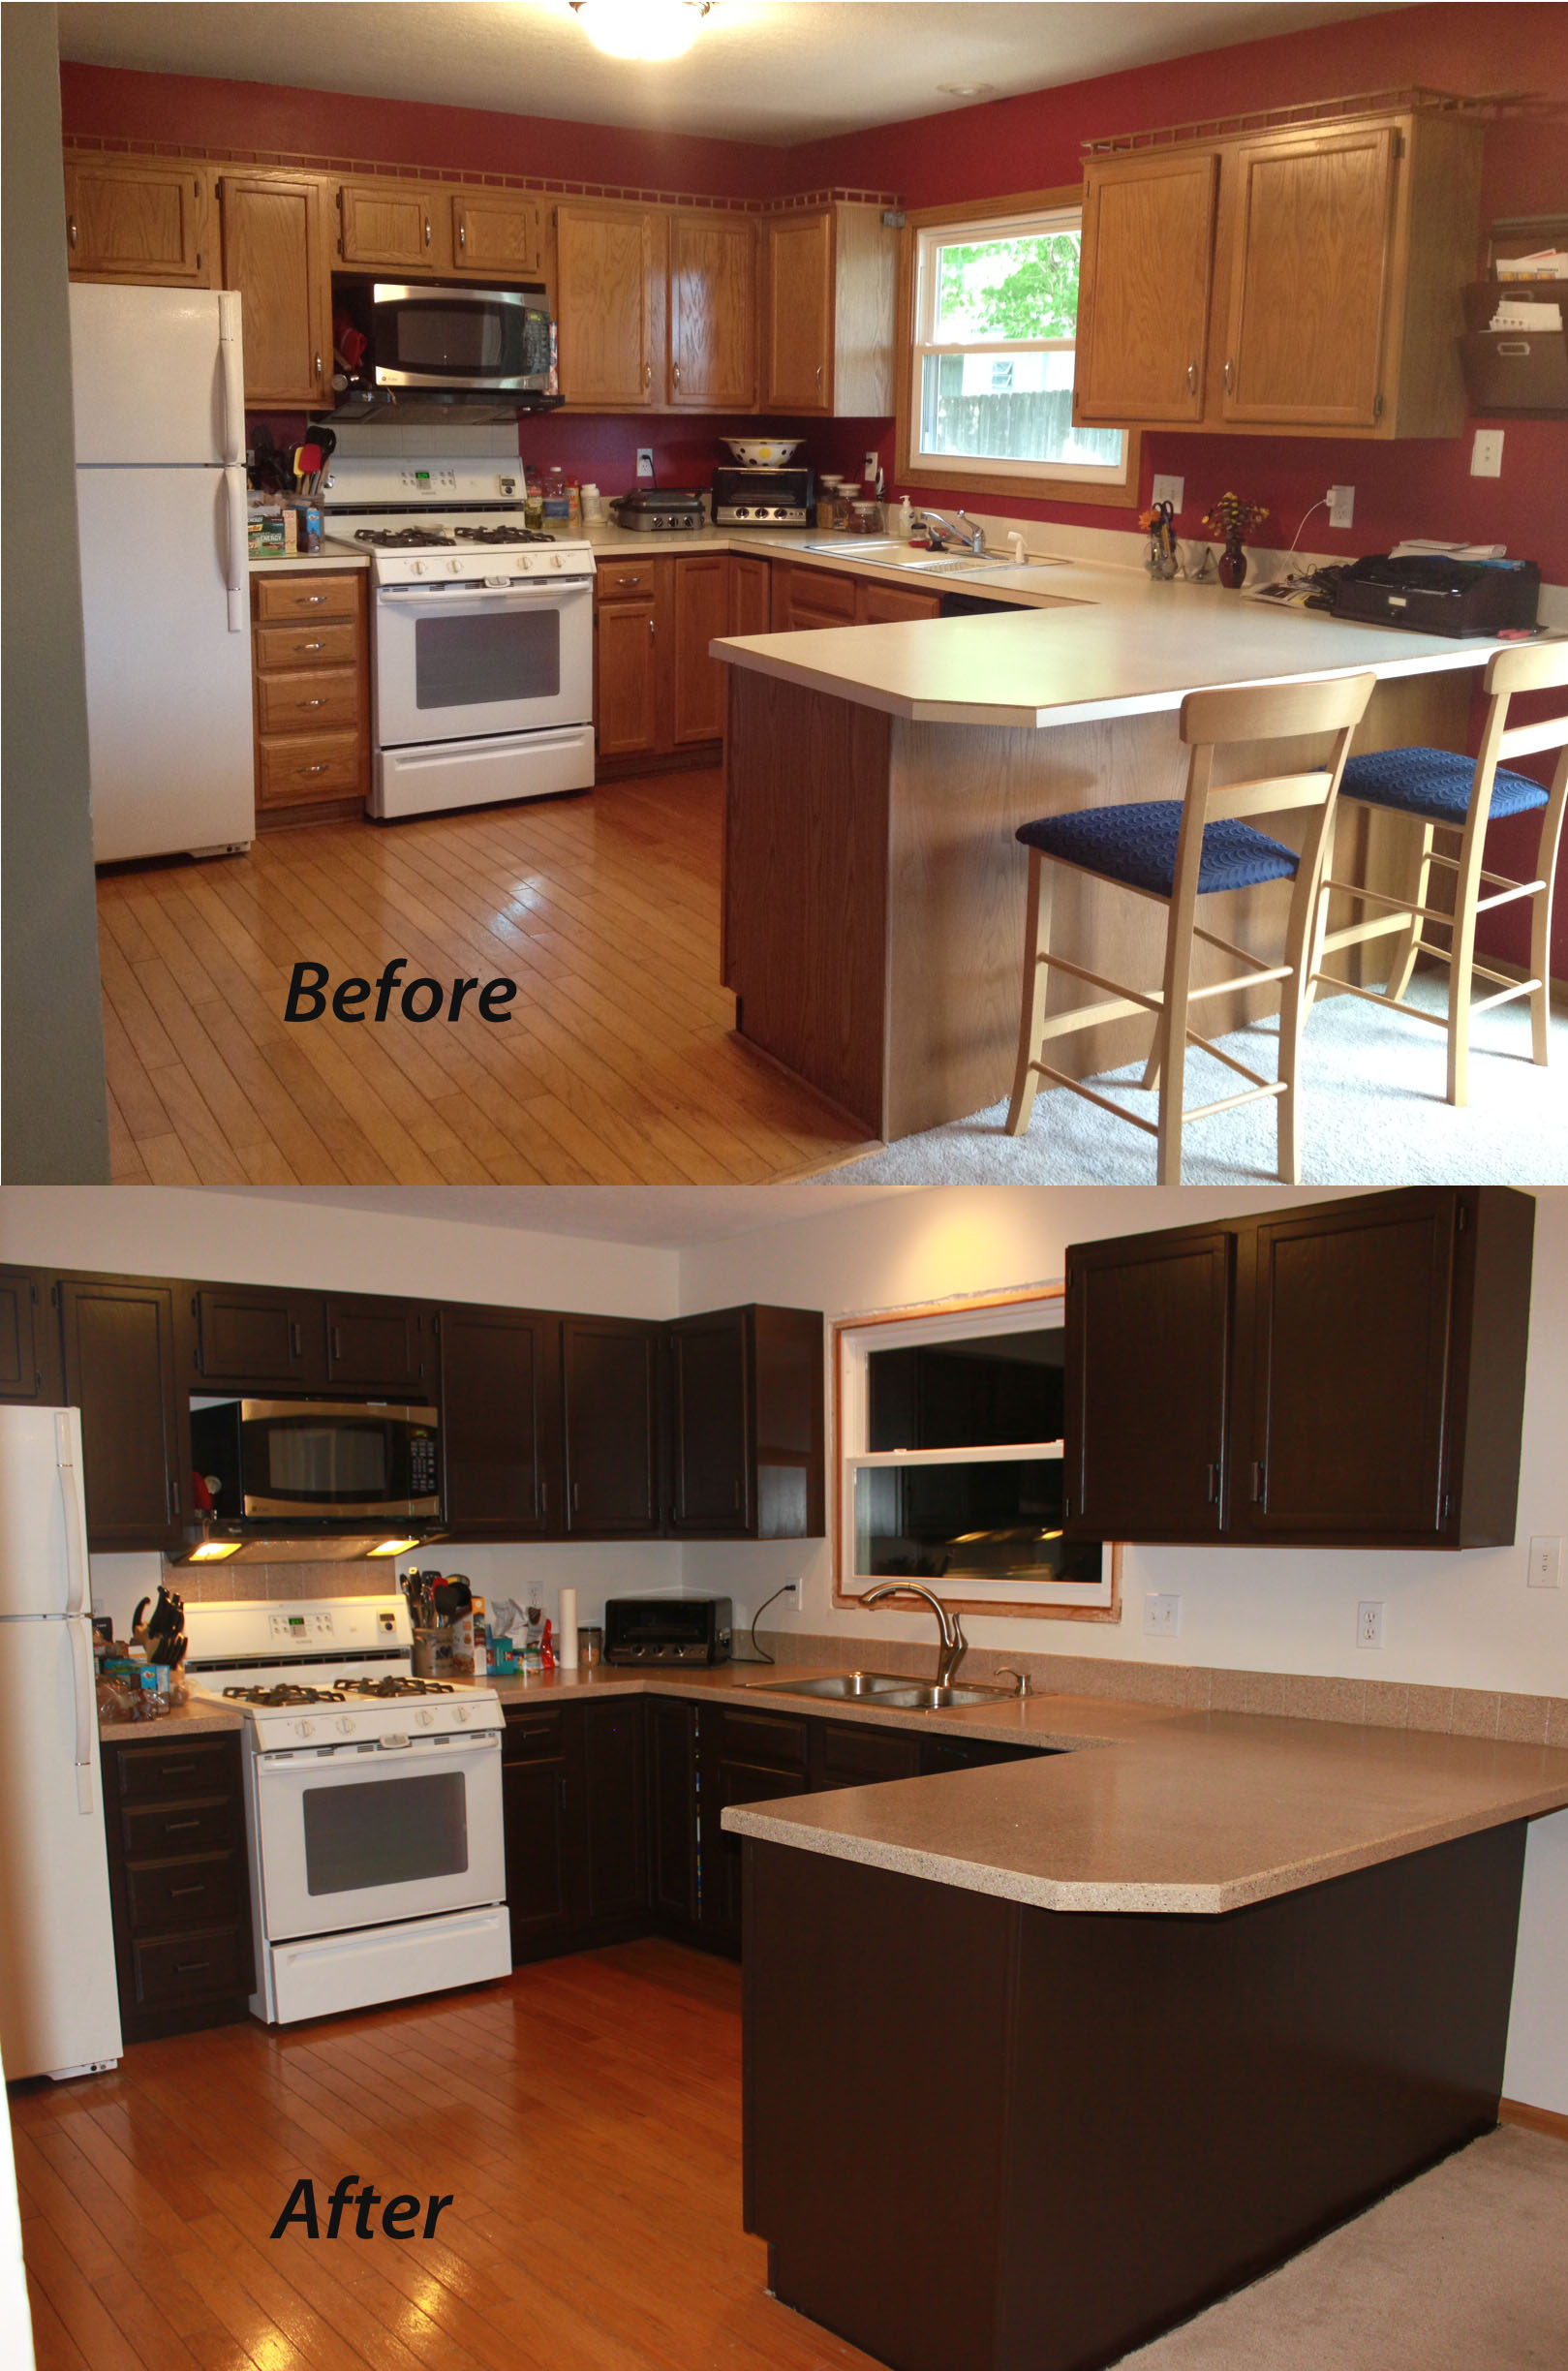 Painting Kitchen Cabinets Sometimes Homemade - Refinishing kitchen cabinets before and after